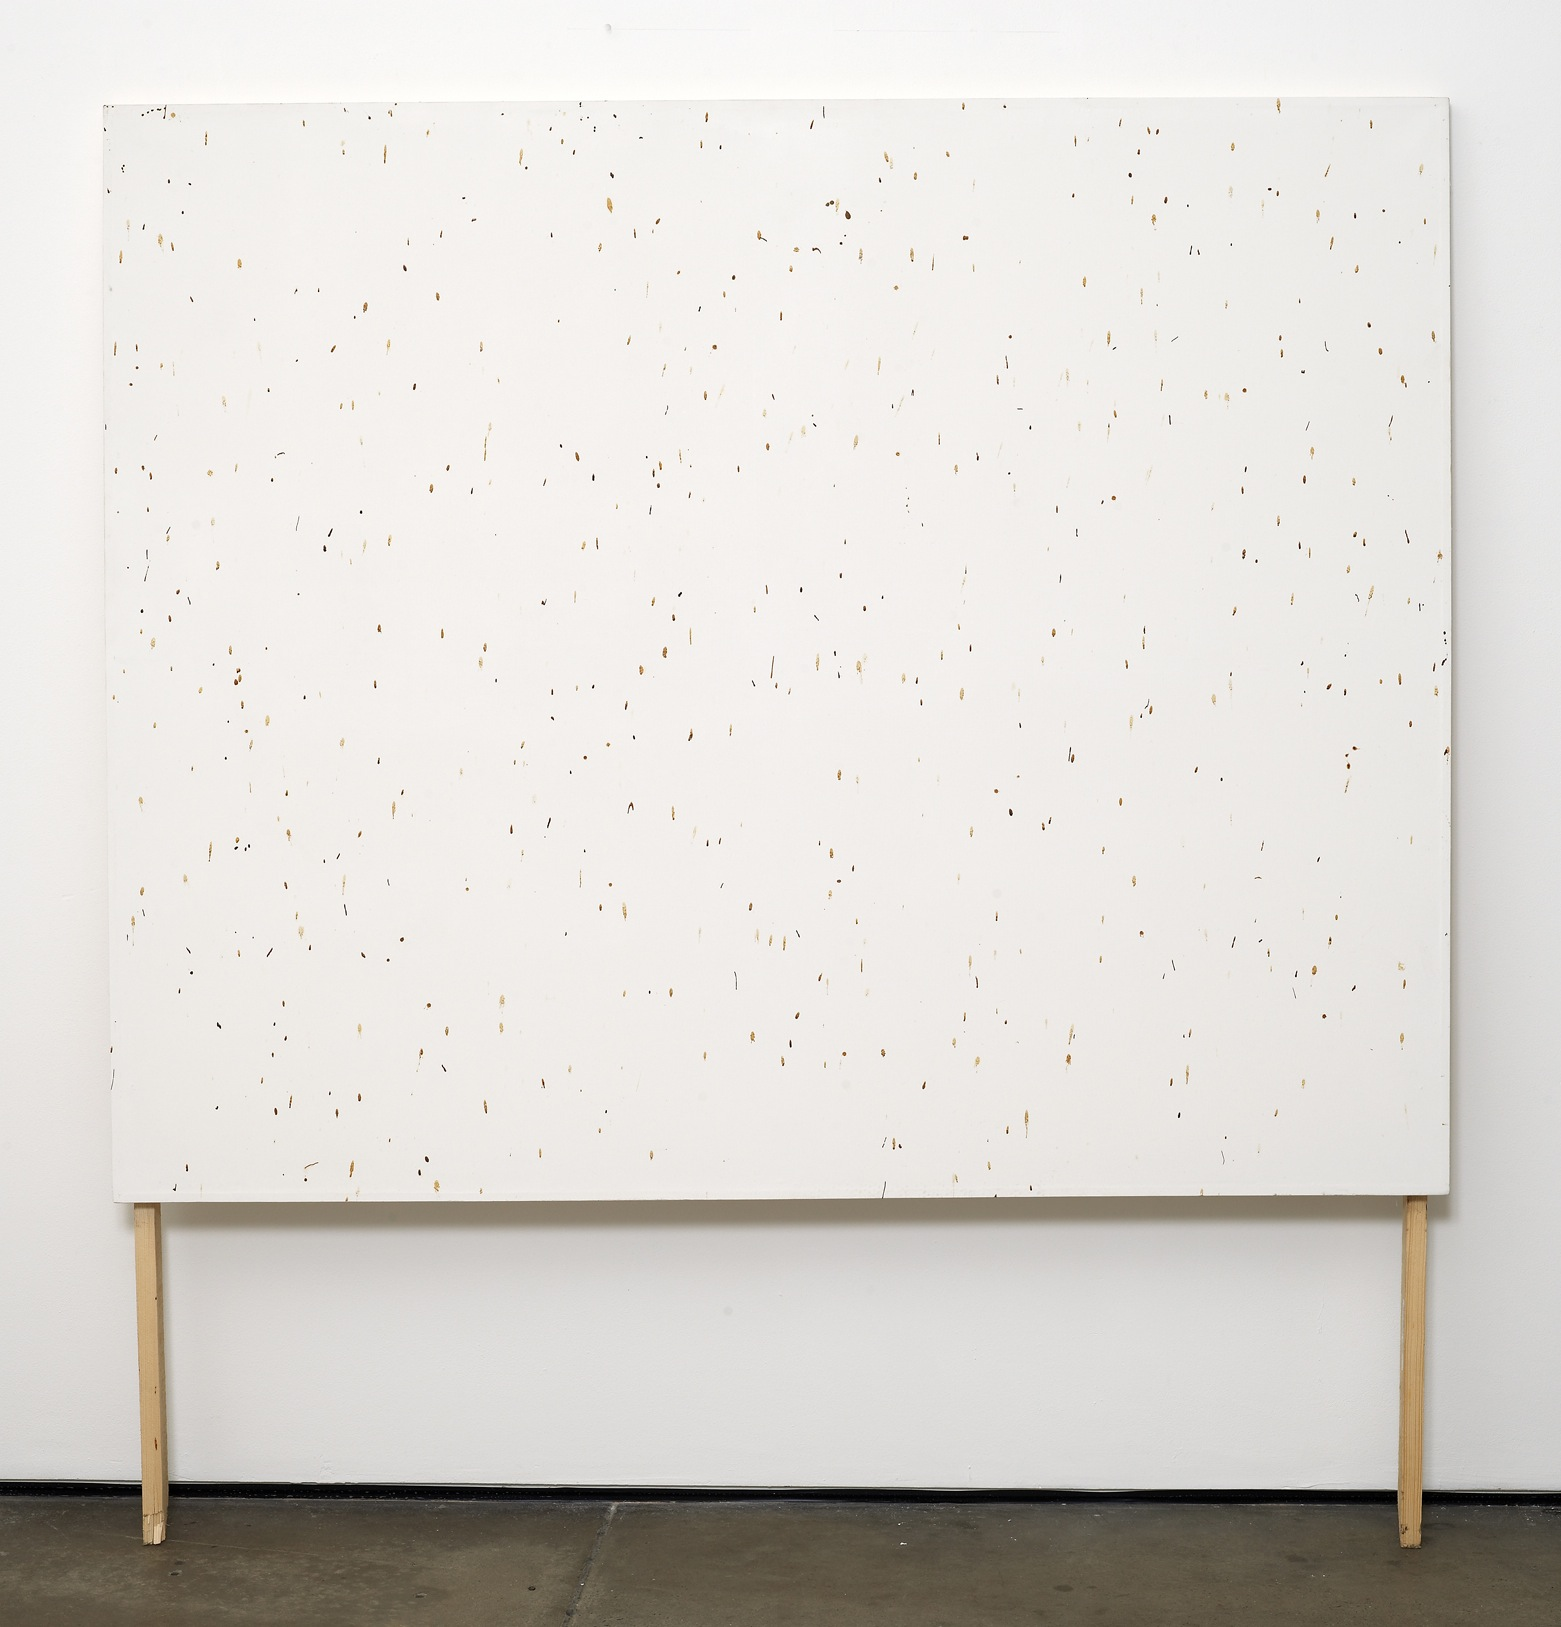 Bee Painting, Large Screen II   2009   Bee droppings on grounded canvas   148 x 120 cm